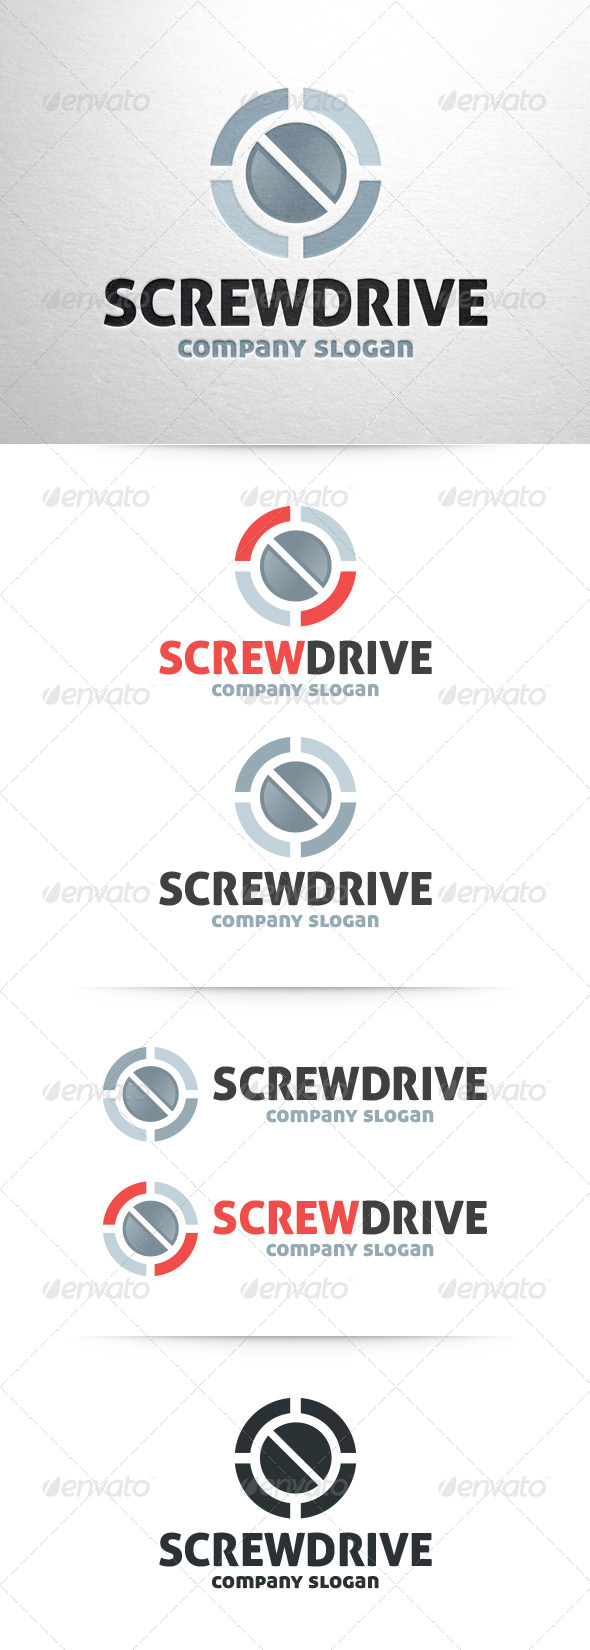 GraphicRiver Screwdrive Logo Template 6436685